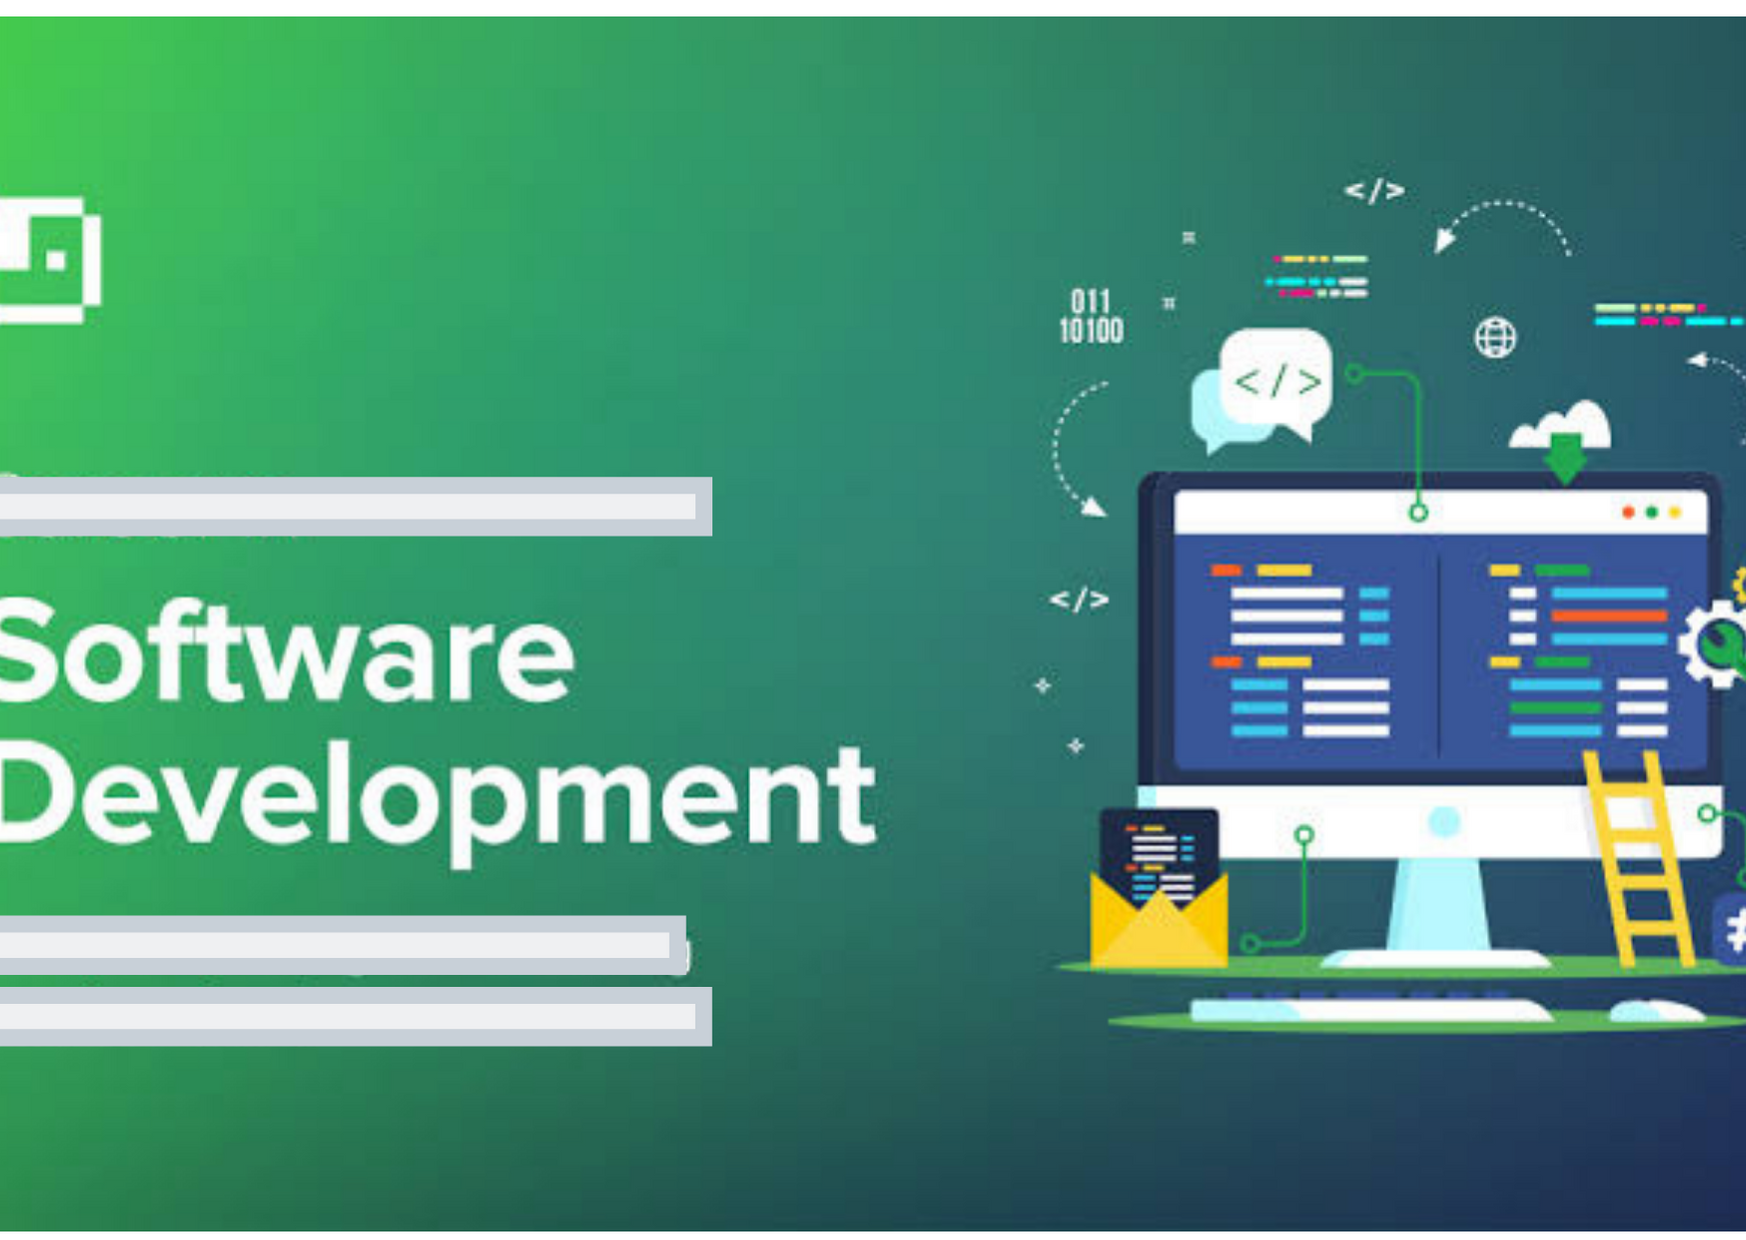 Will create any software of your choice